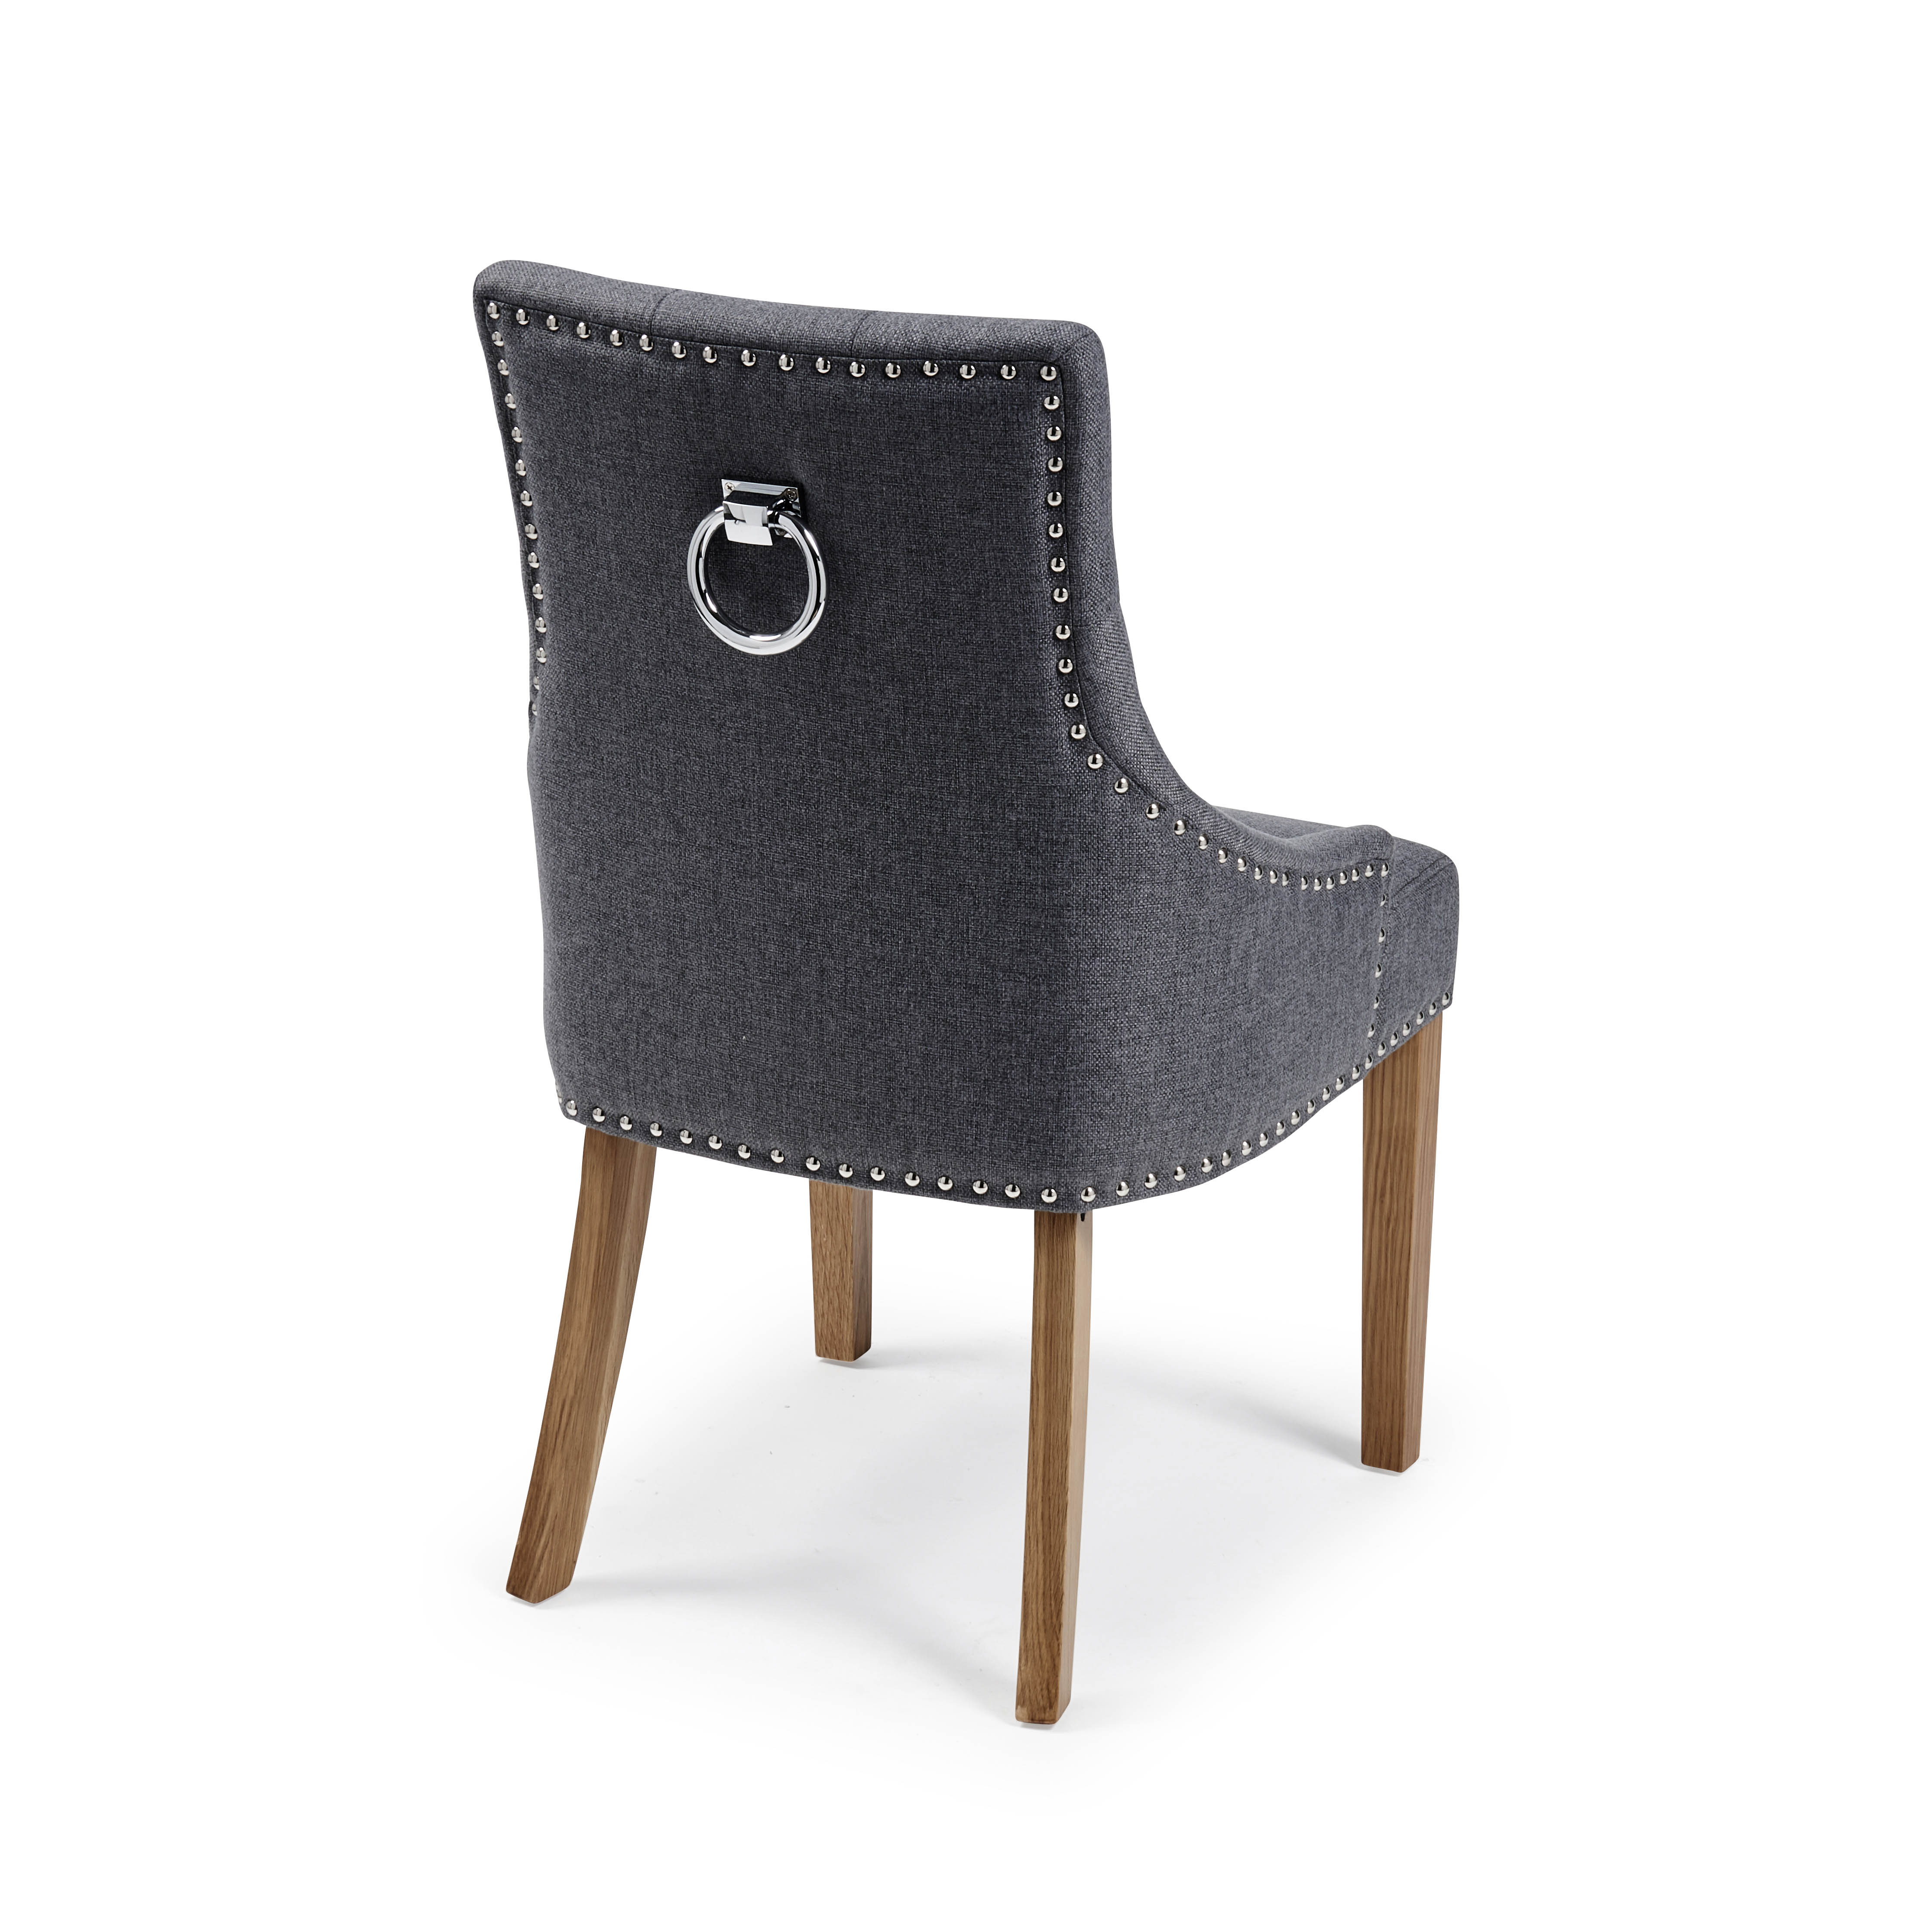 Chelsea Upholstered Scoop Dining Chair In A Charcoal Linen with Oak Legs